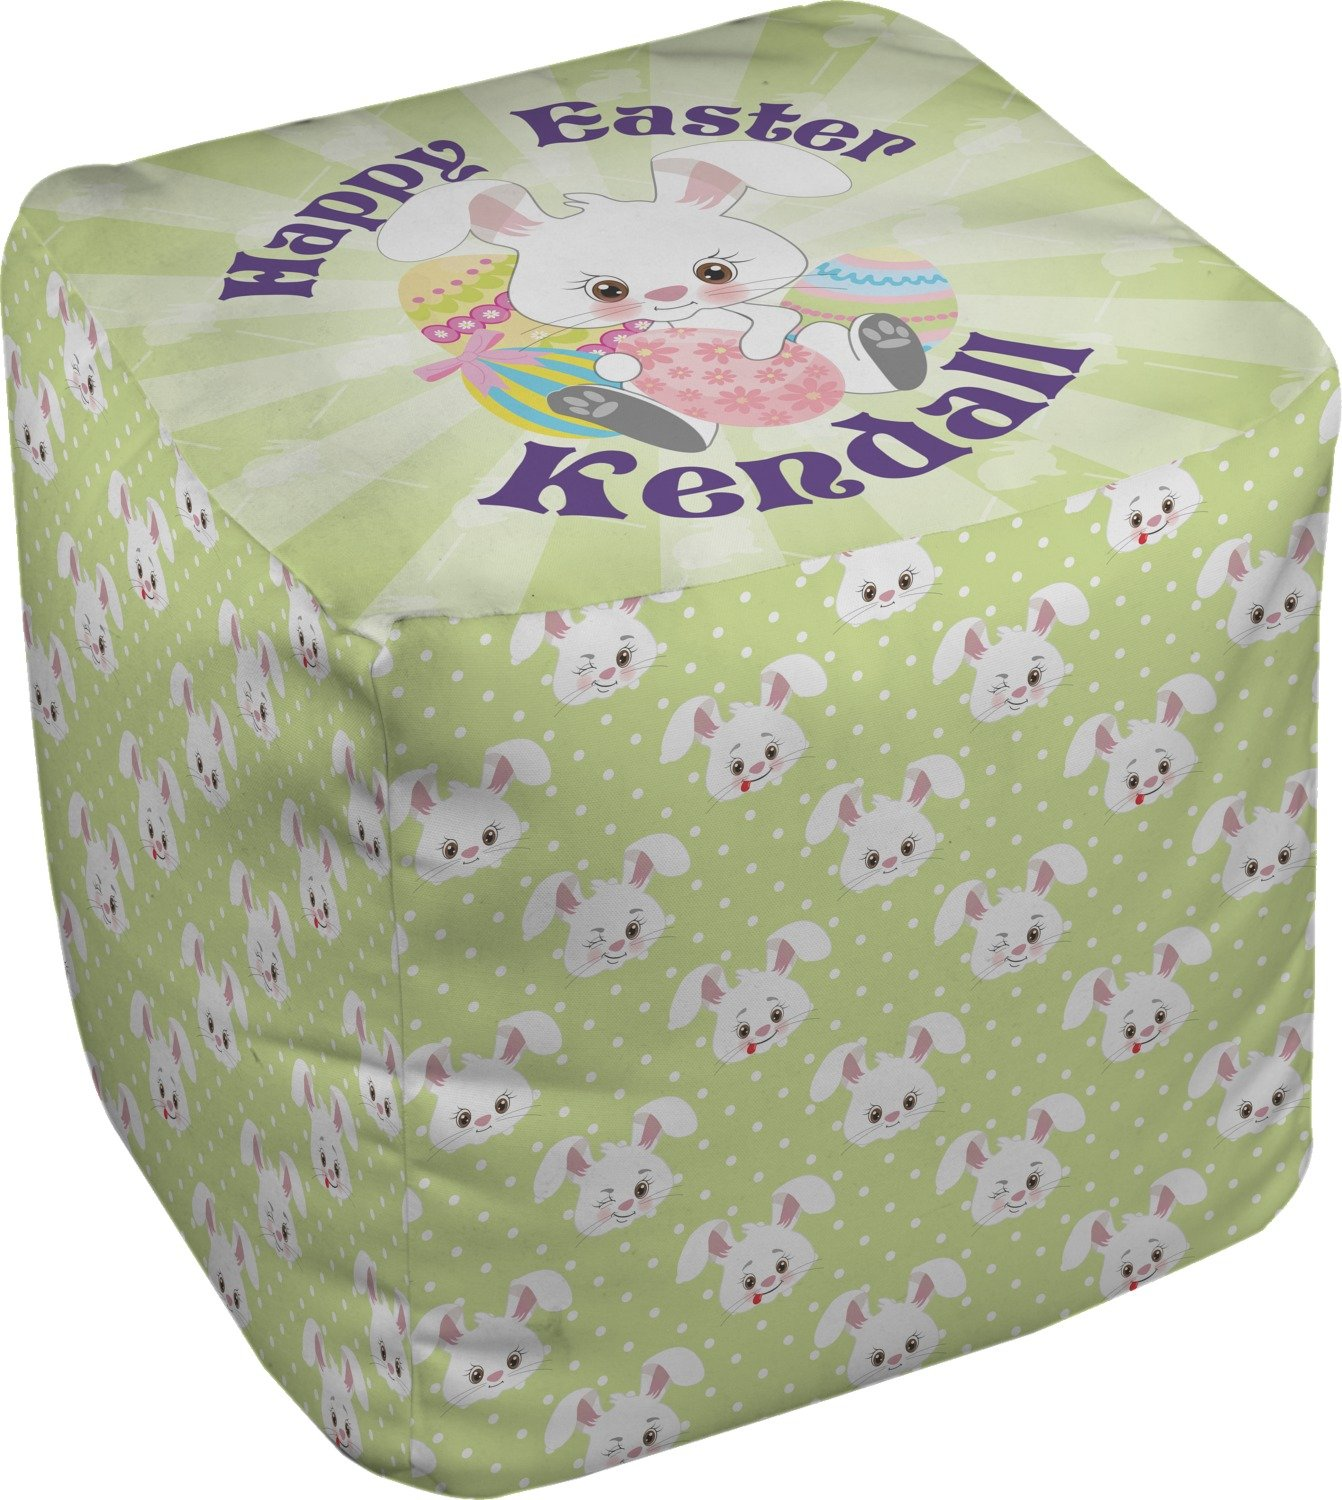 RNK Shops Easter Bunny Cube Pouf Ottoman - 13'' (Personalized)